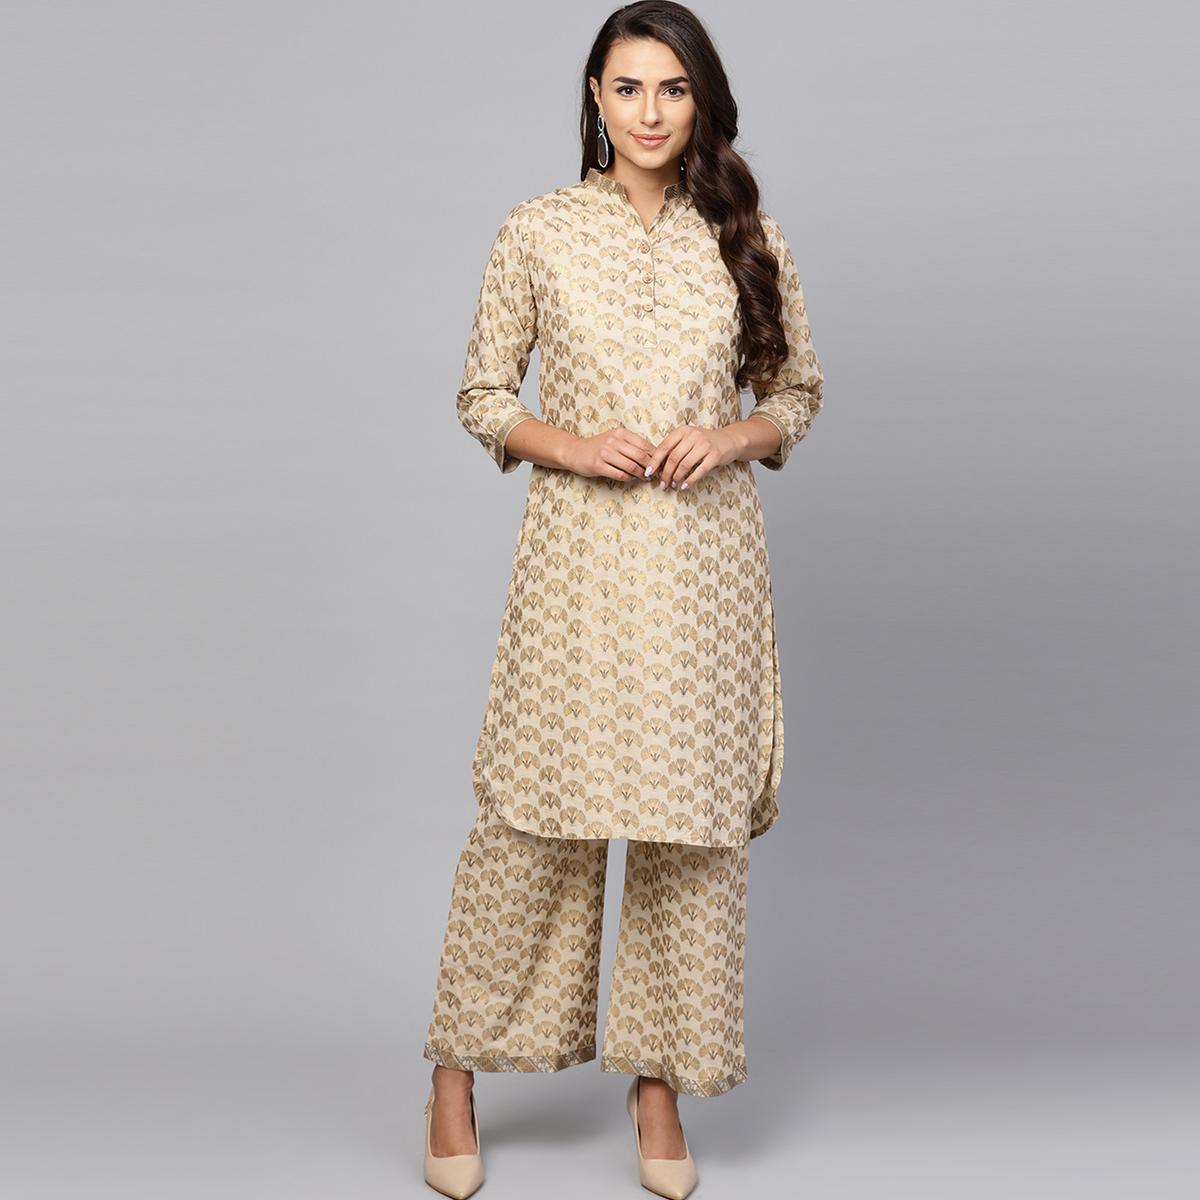 Sensational Beige Colored Casual Printed Cotton Kurti And Bottom Set